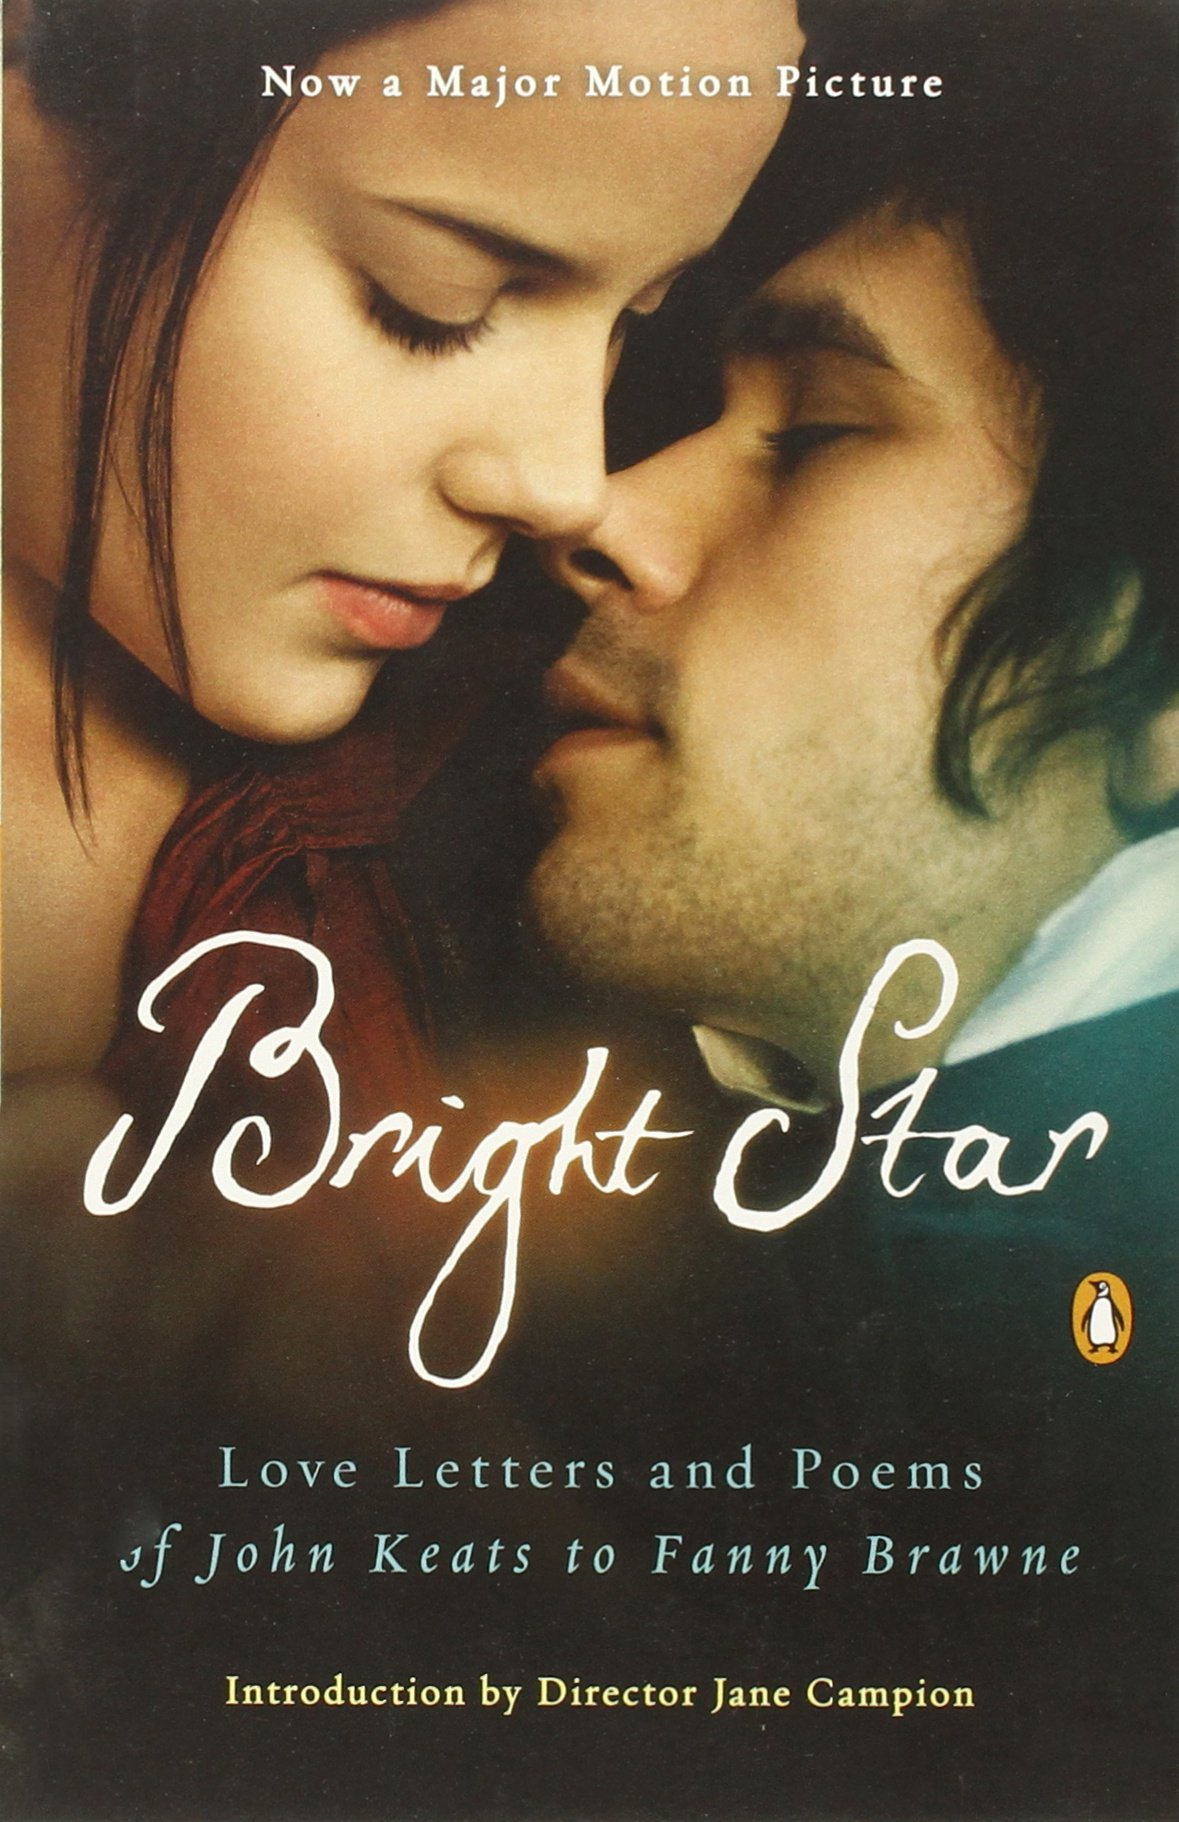 bright star love letters and poems of john keats to fanny brawne john keats jane campion 9780143117742 amazoncom books